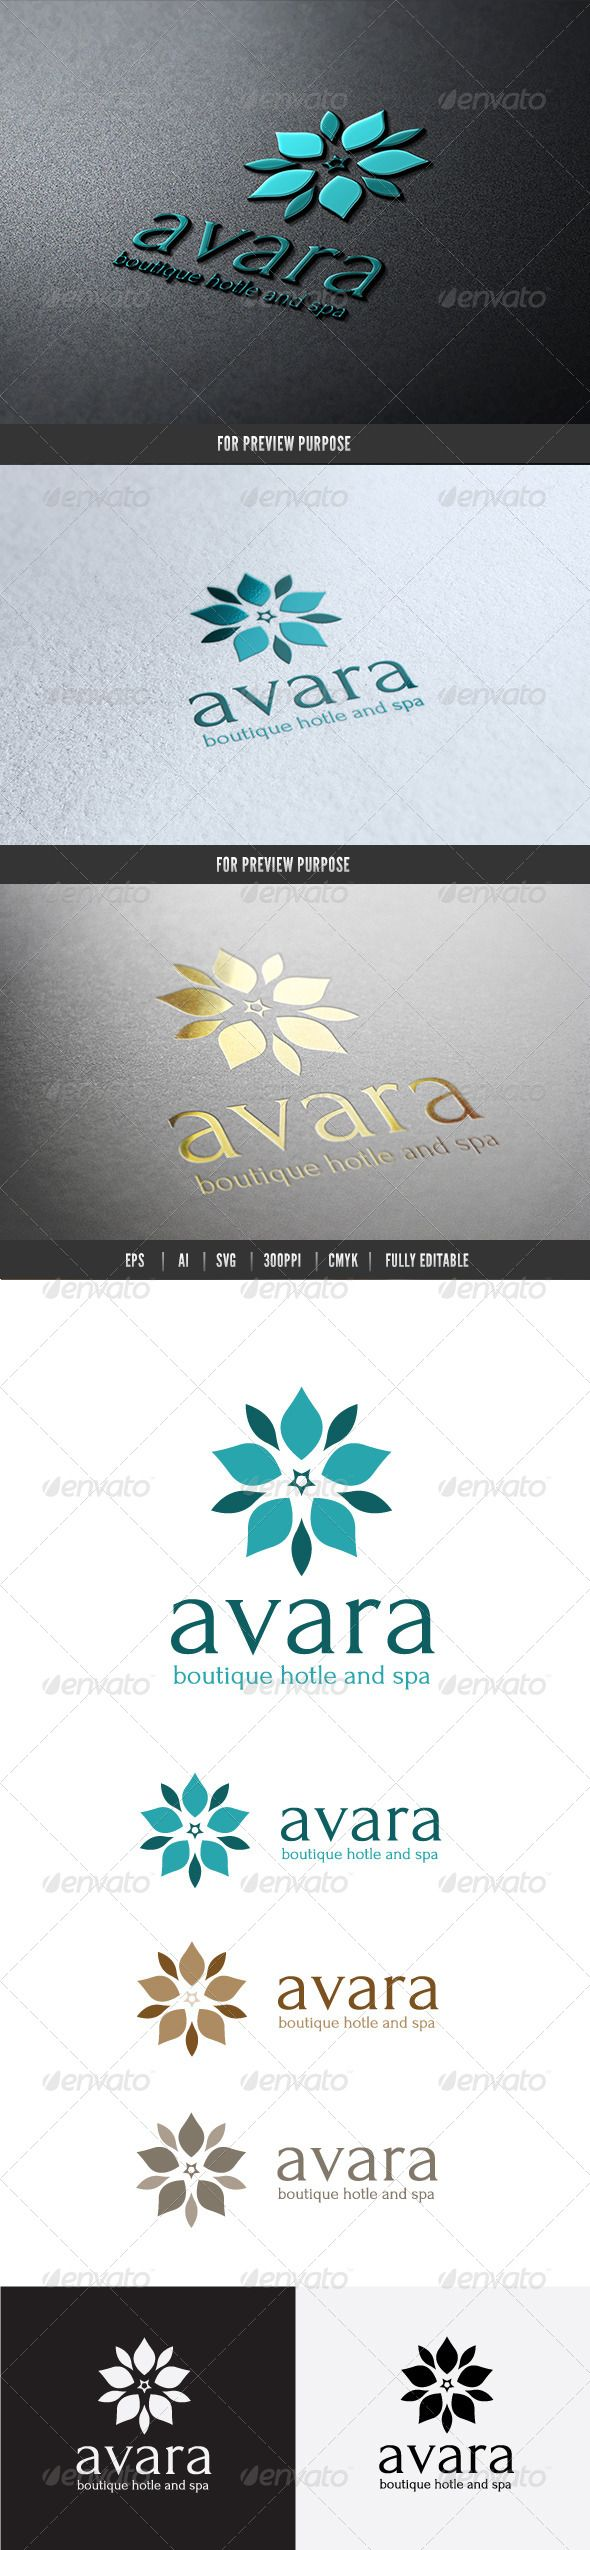 Boutique Hotel Logo — Vector EPS #badges #home • Available here → https://graphicriver.net/item/boutique-hotel-logo/6553235?ref=pxcr